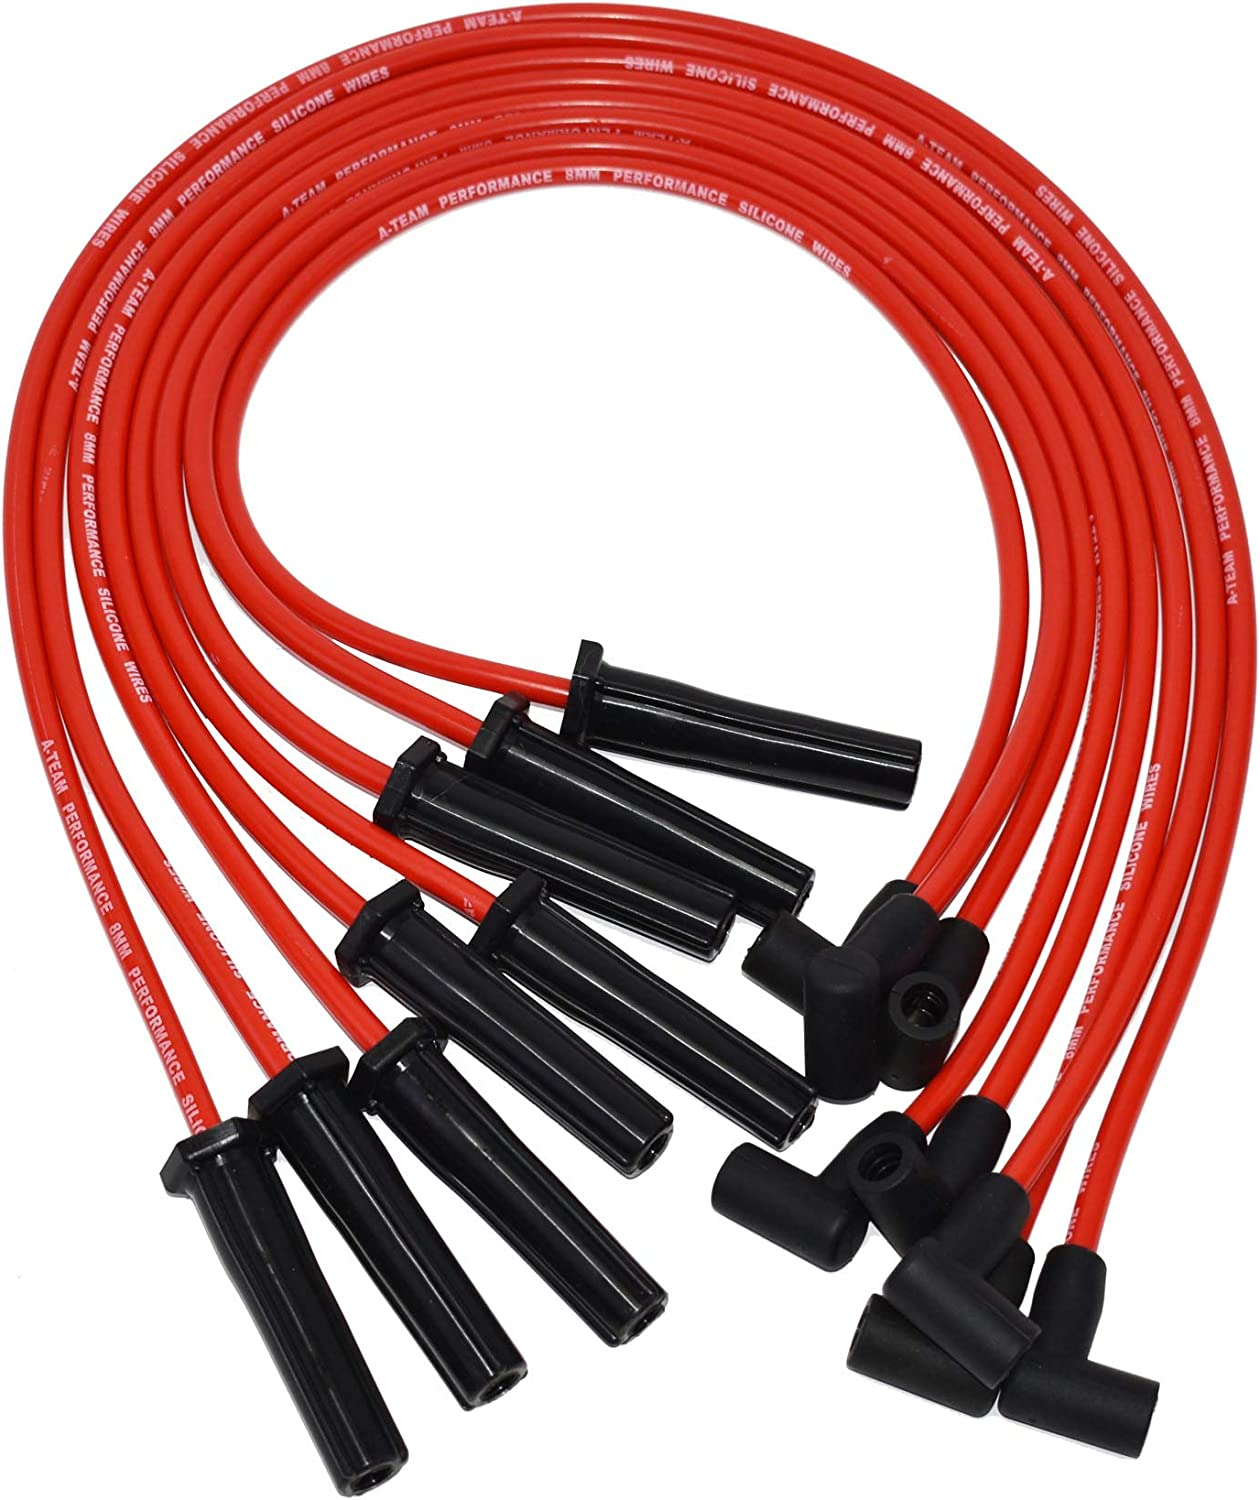 A-Team Performance 8.0mm Red Silicone Spark Plug Wires BBC Big Block Compatible With Chevy Chevrolet GMC Straight Boot Wires 396 402 427 454 502 572